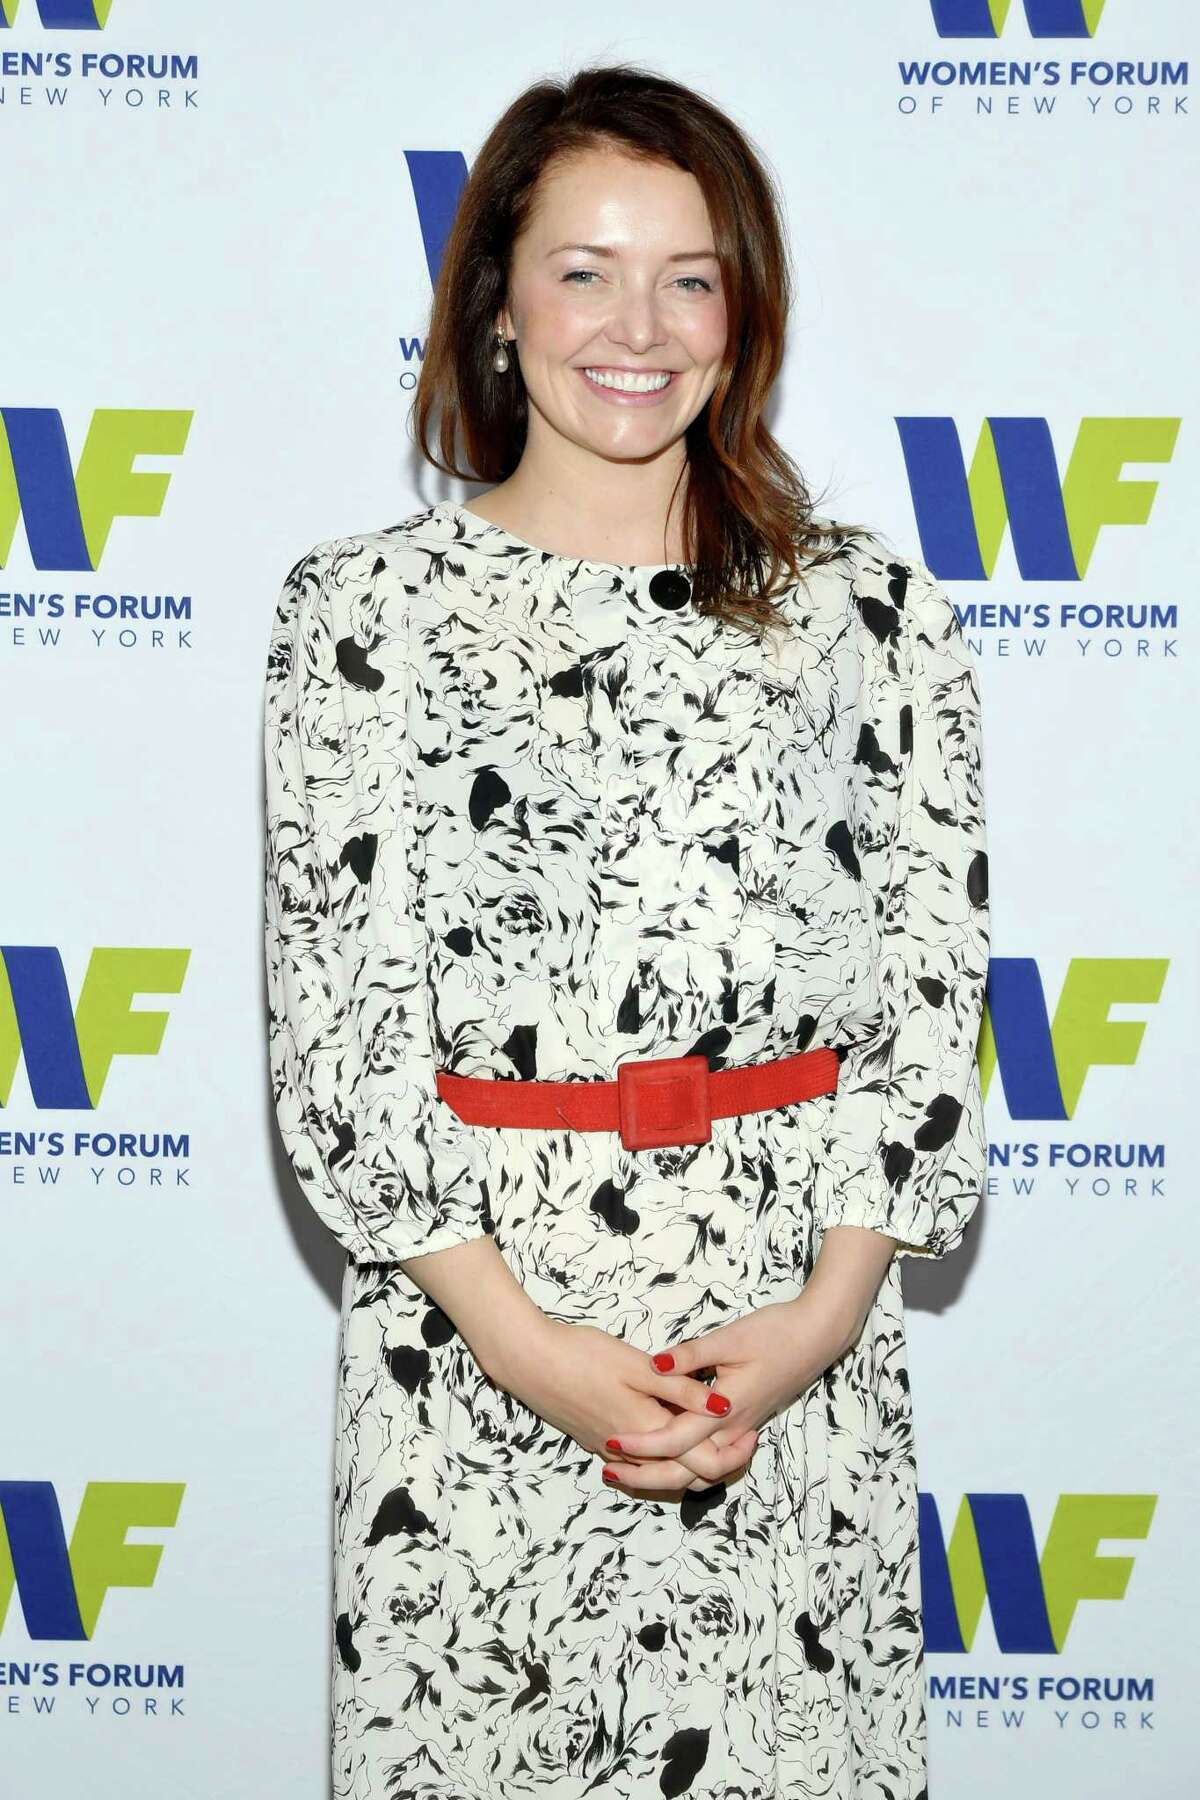 Lindsey Boylan attends The 9th Annual Elly Awards Hosted By The Women's Forum Of New York on June 17, 2019 in New York City. Boylan accused Gov. Andrew Cuomo of sexual harassment in 2020. A new bill in the state Senate in 2021 looks to prevent retaliation by employees who file complaints of sexual harassment by preventing the leaking of their personnel file.